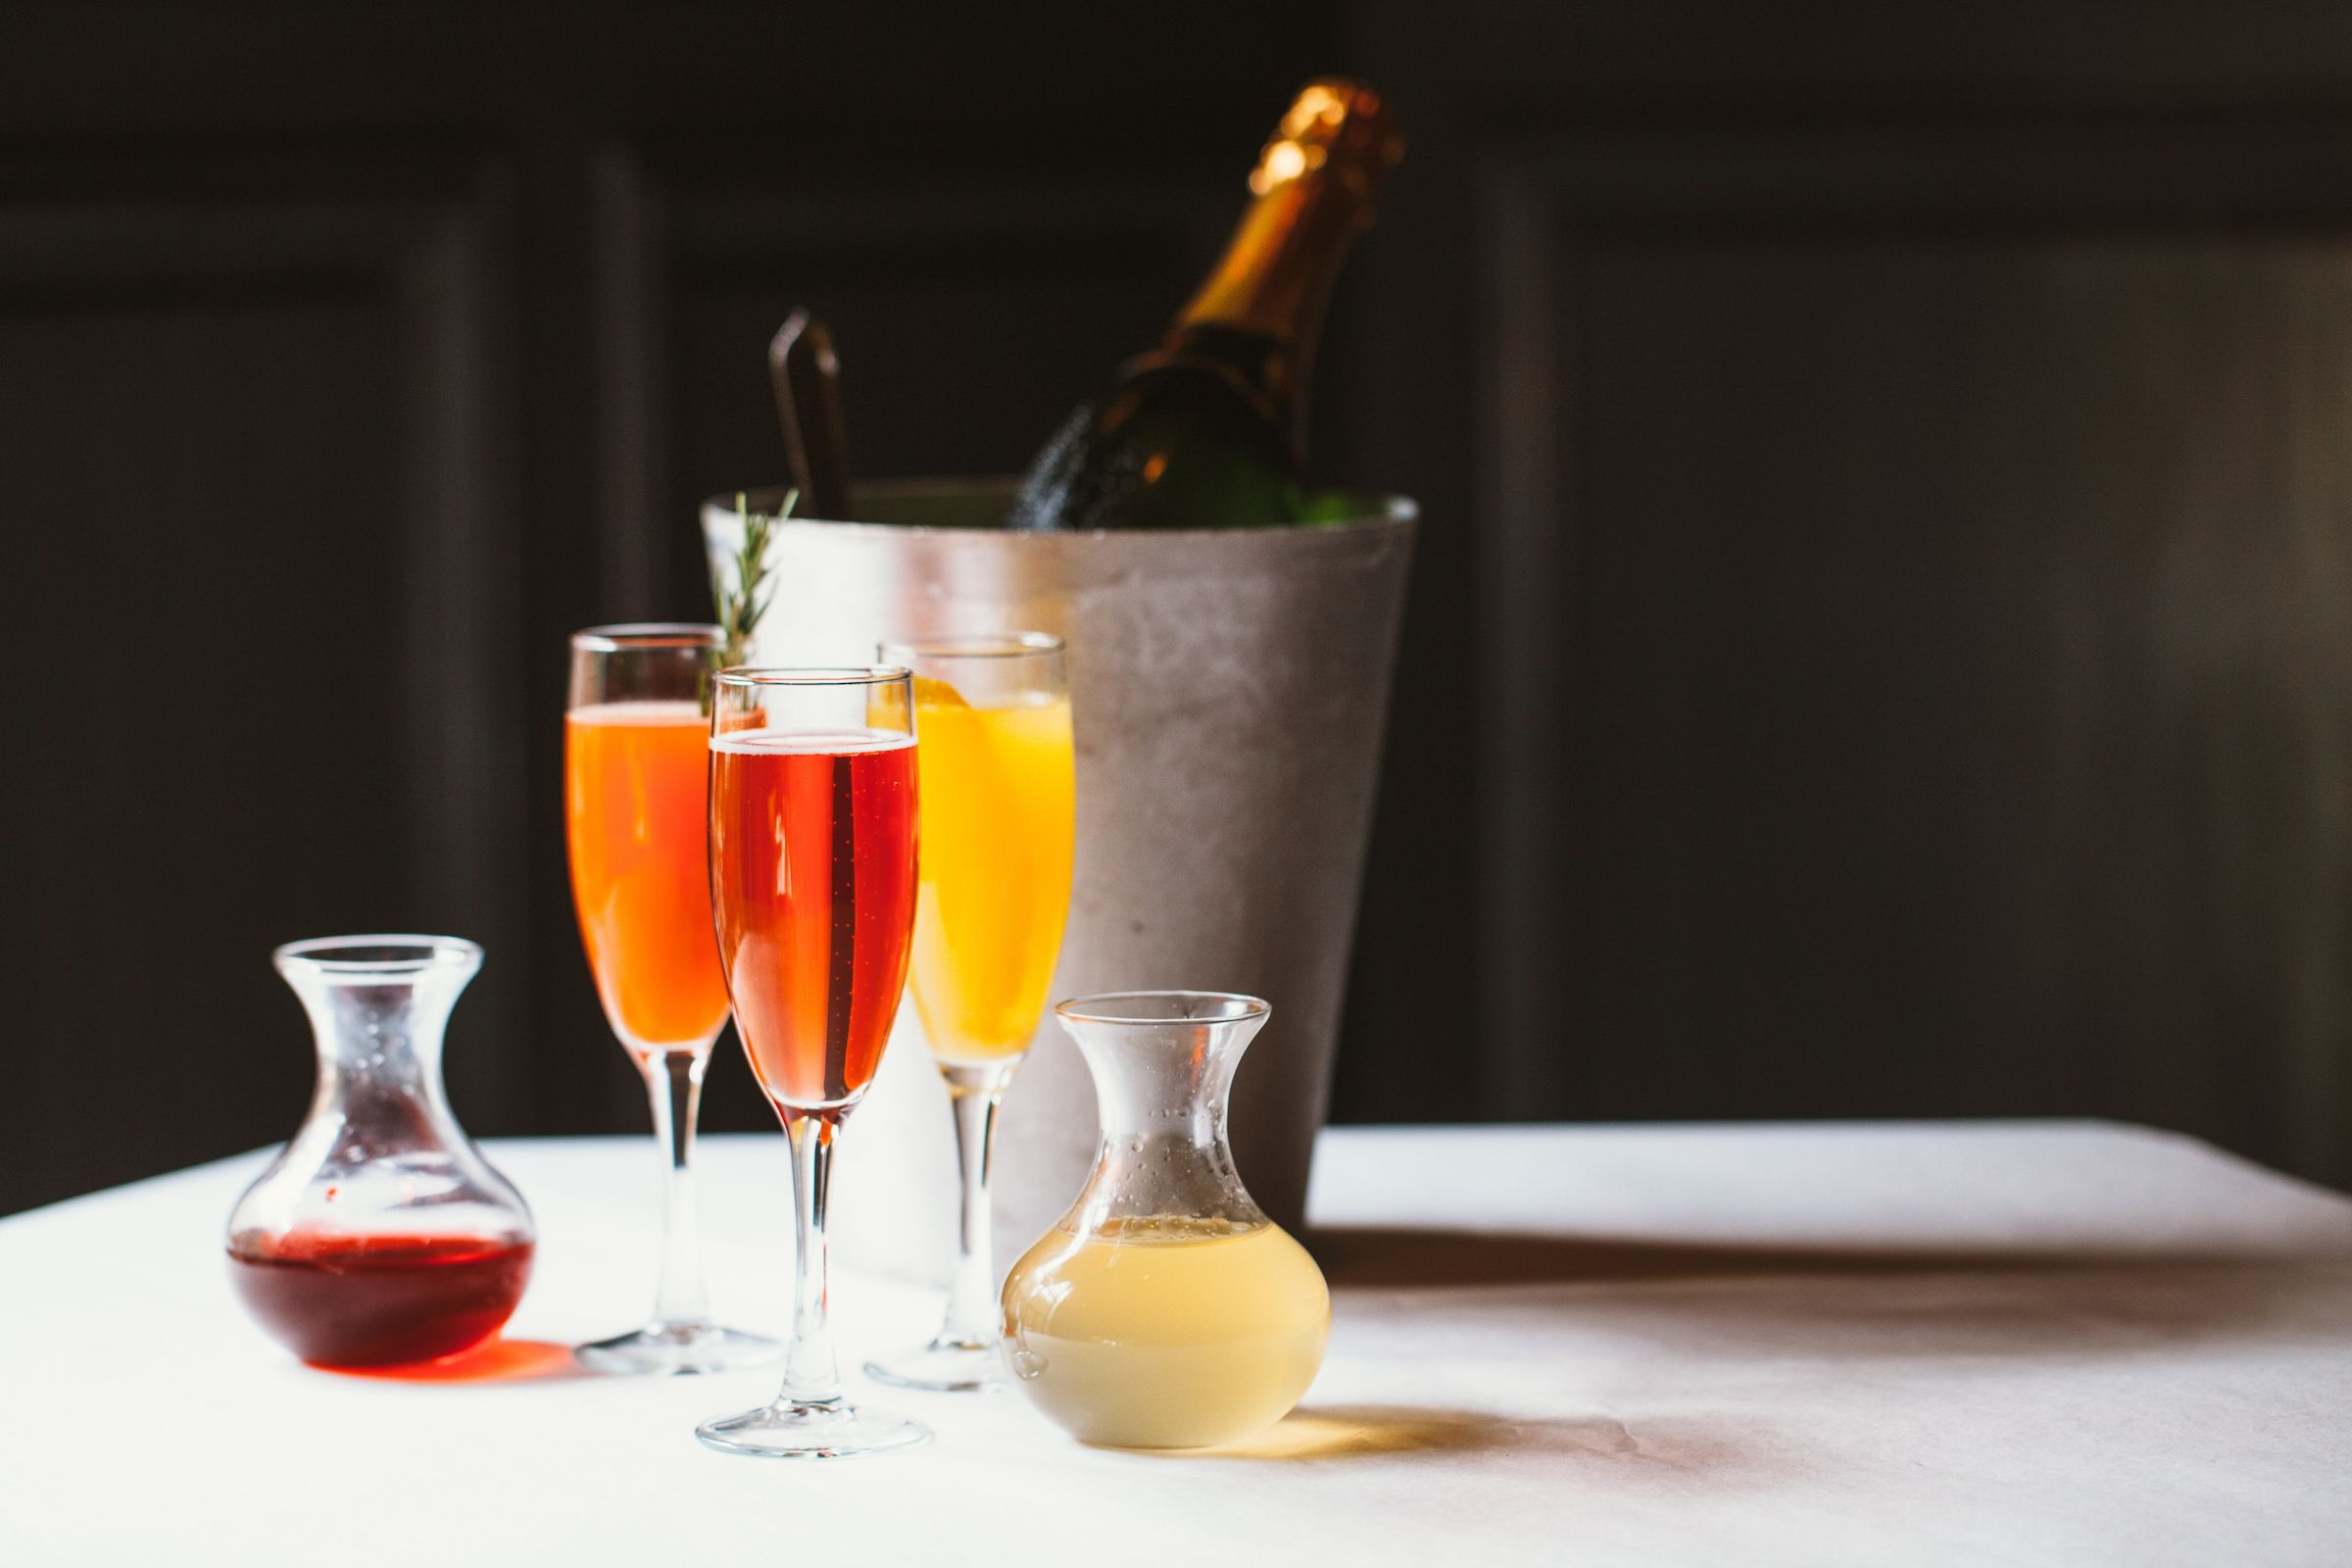 15 Champagne Cocktails That Are Way Better Than Mimosas